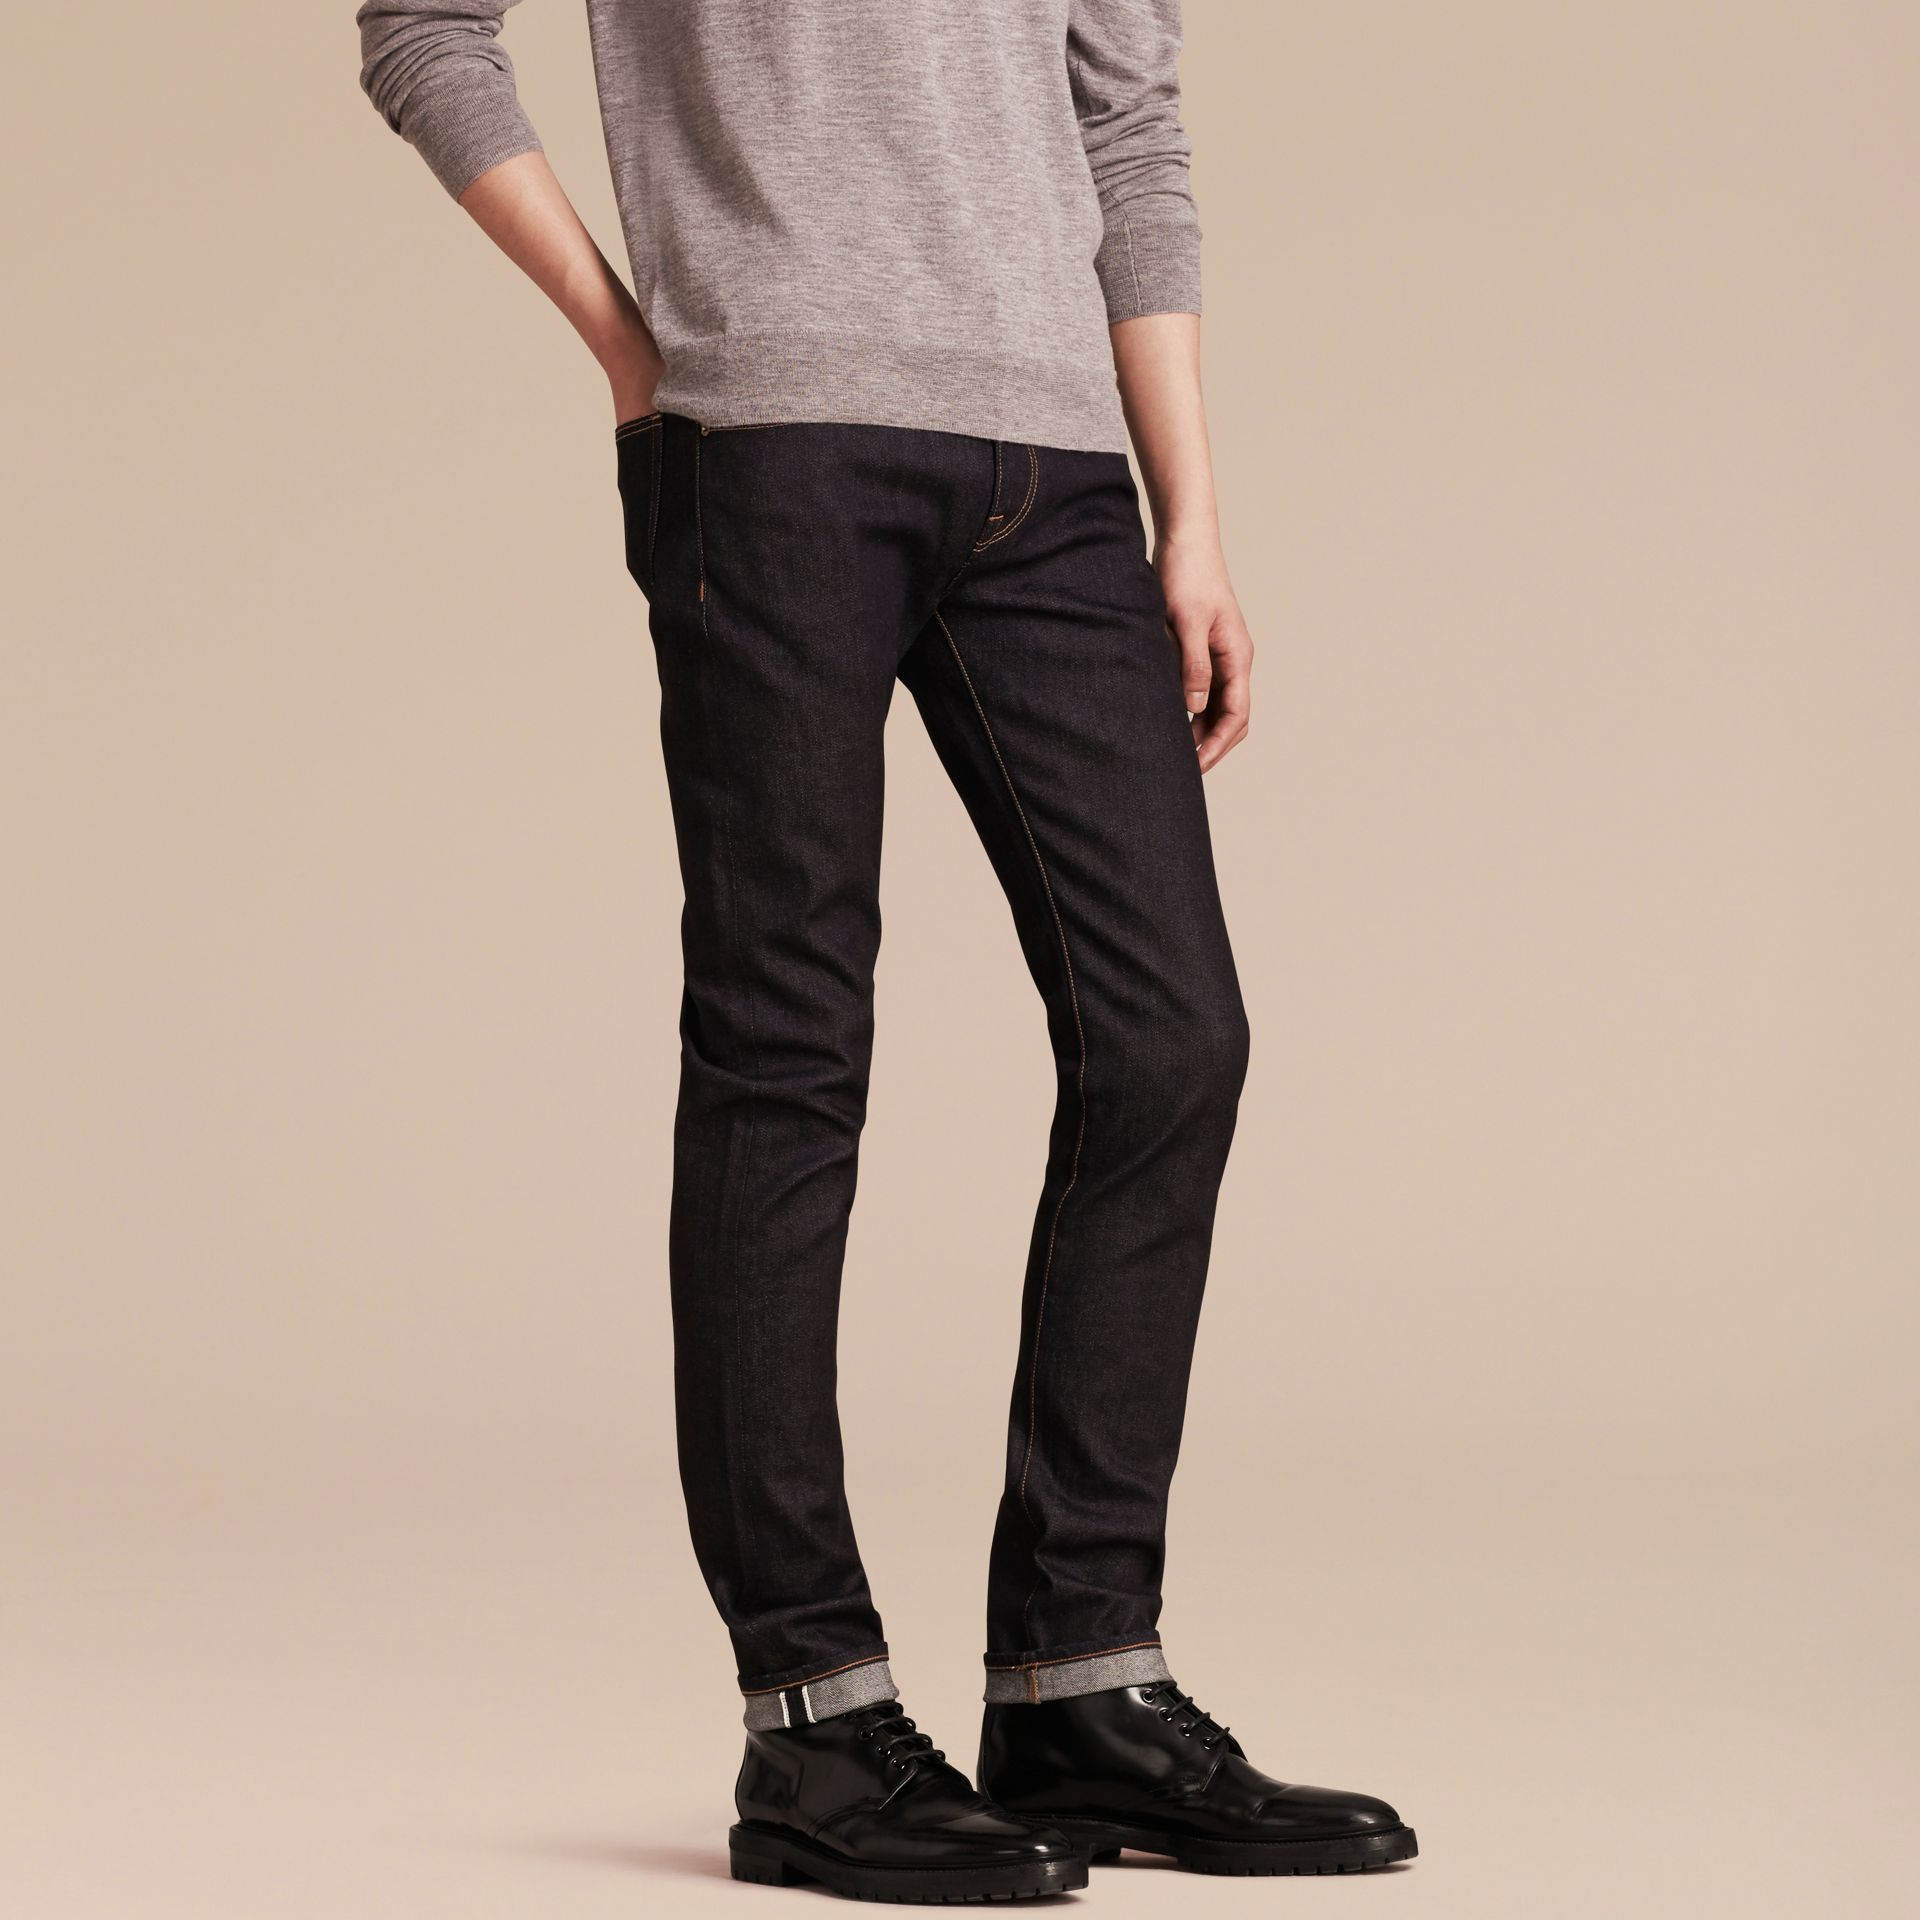 Indigo sombre Jean slim en denim selvedge japonais extensible - photo de la galerie 7